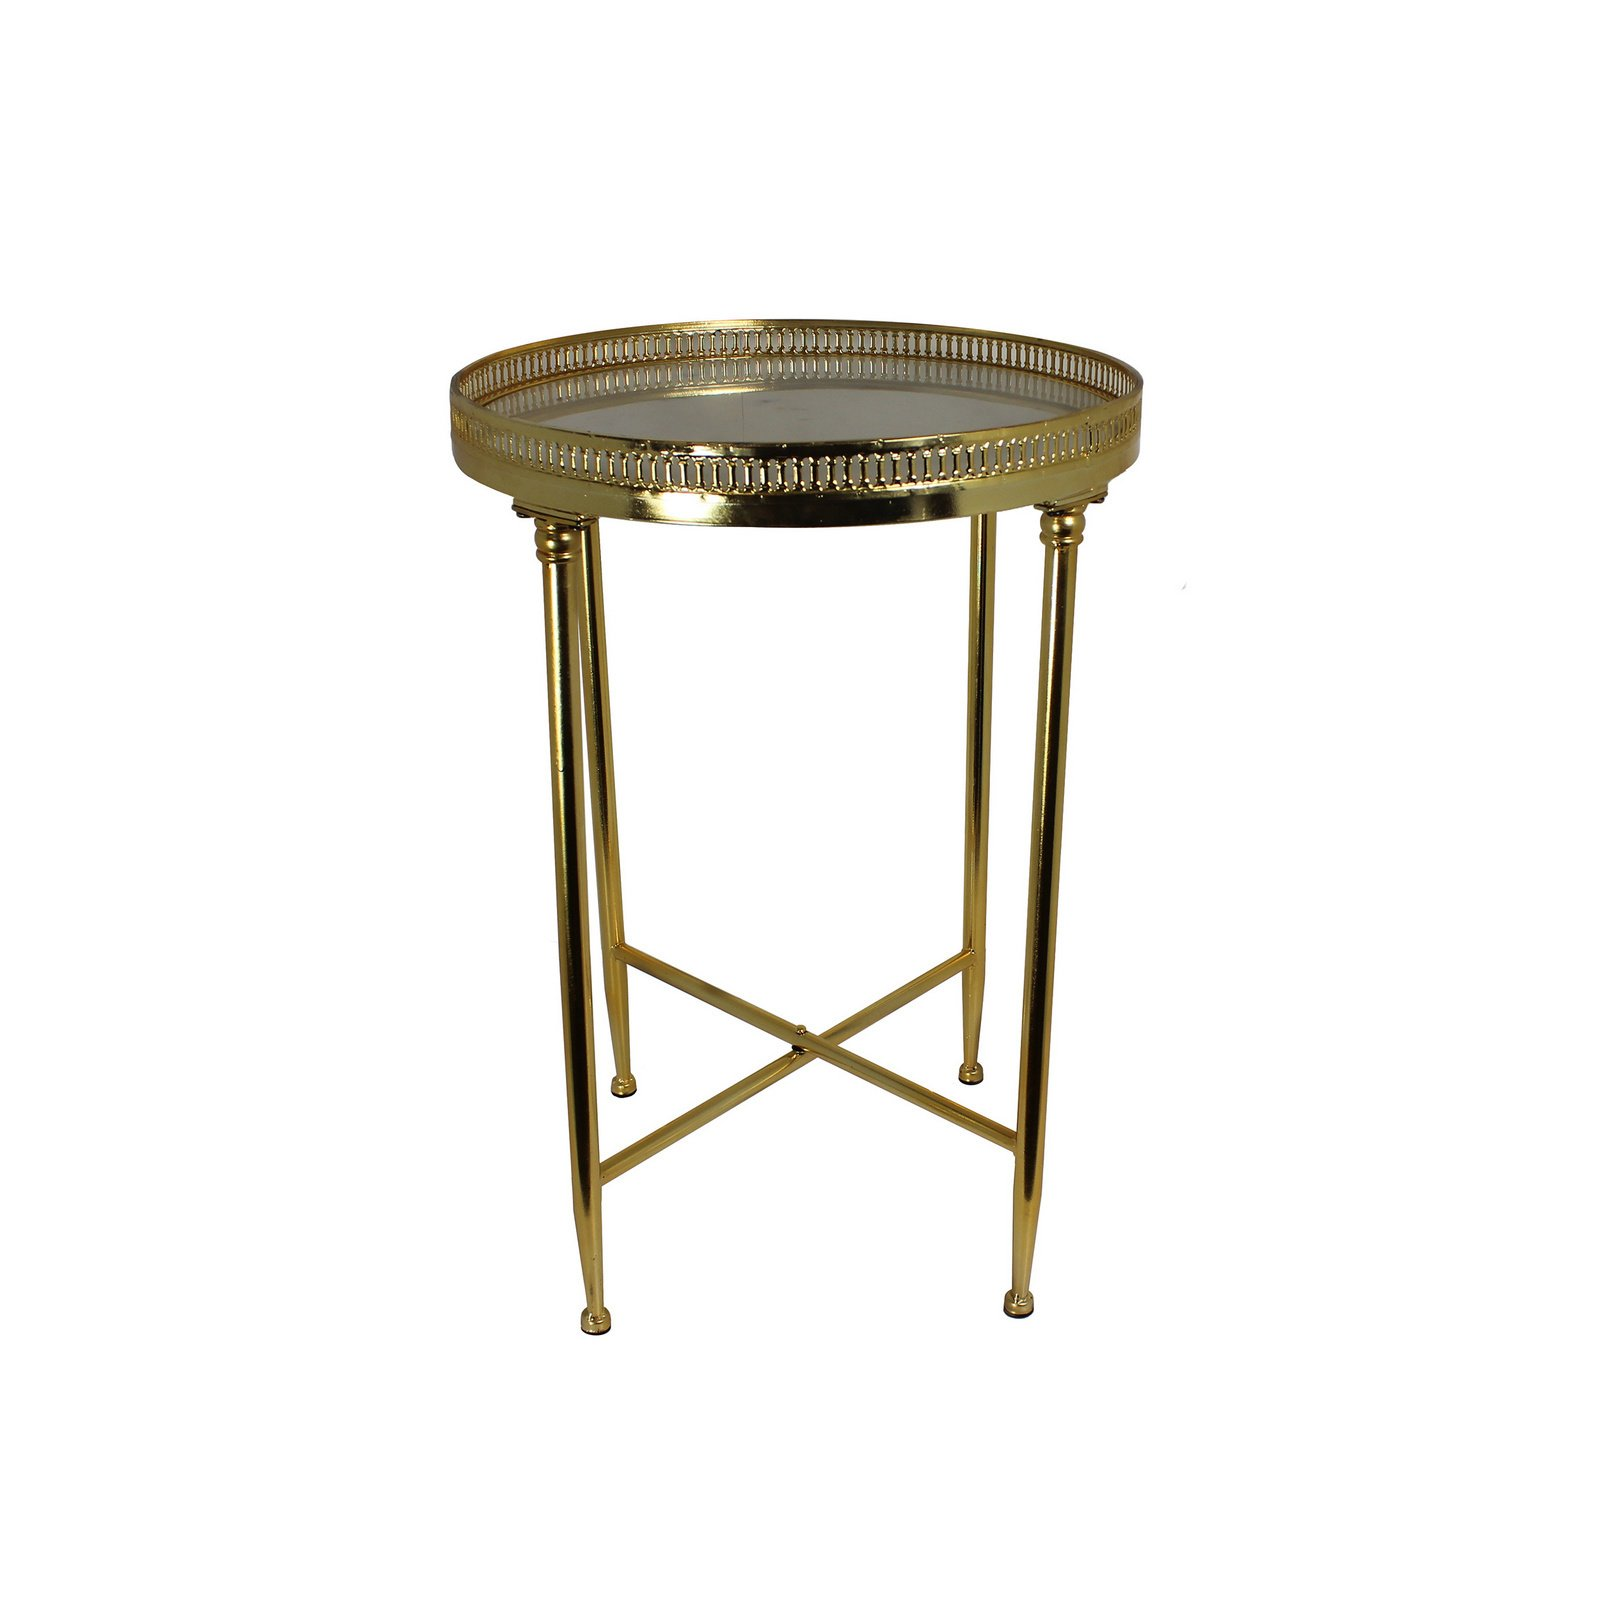 urban designs satin gold inch metal and marble top round accent table free shipping today torchiere floor lamp all outdoor storage cabinets with doors timberline furniture sunroom